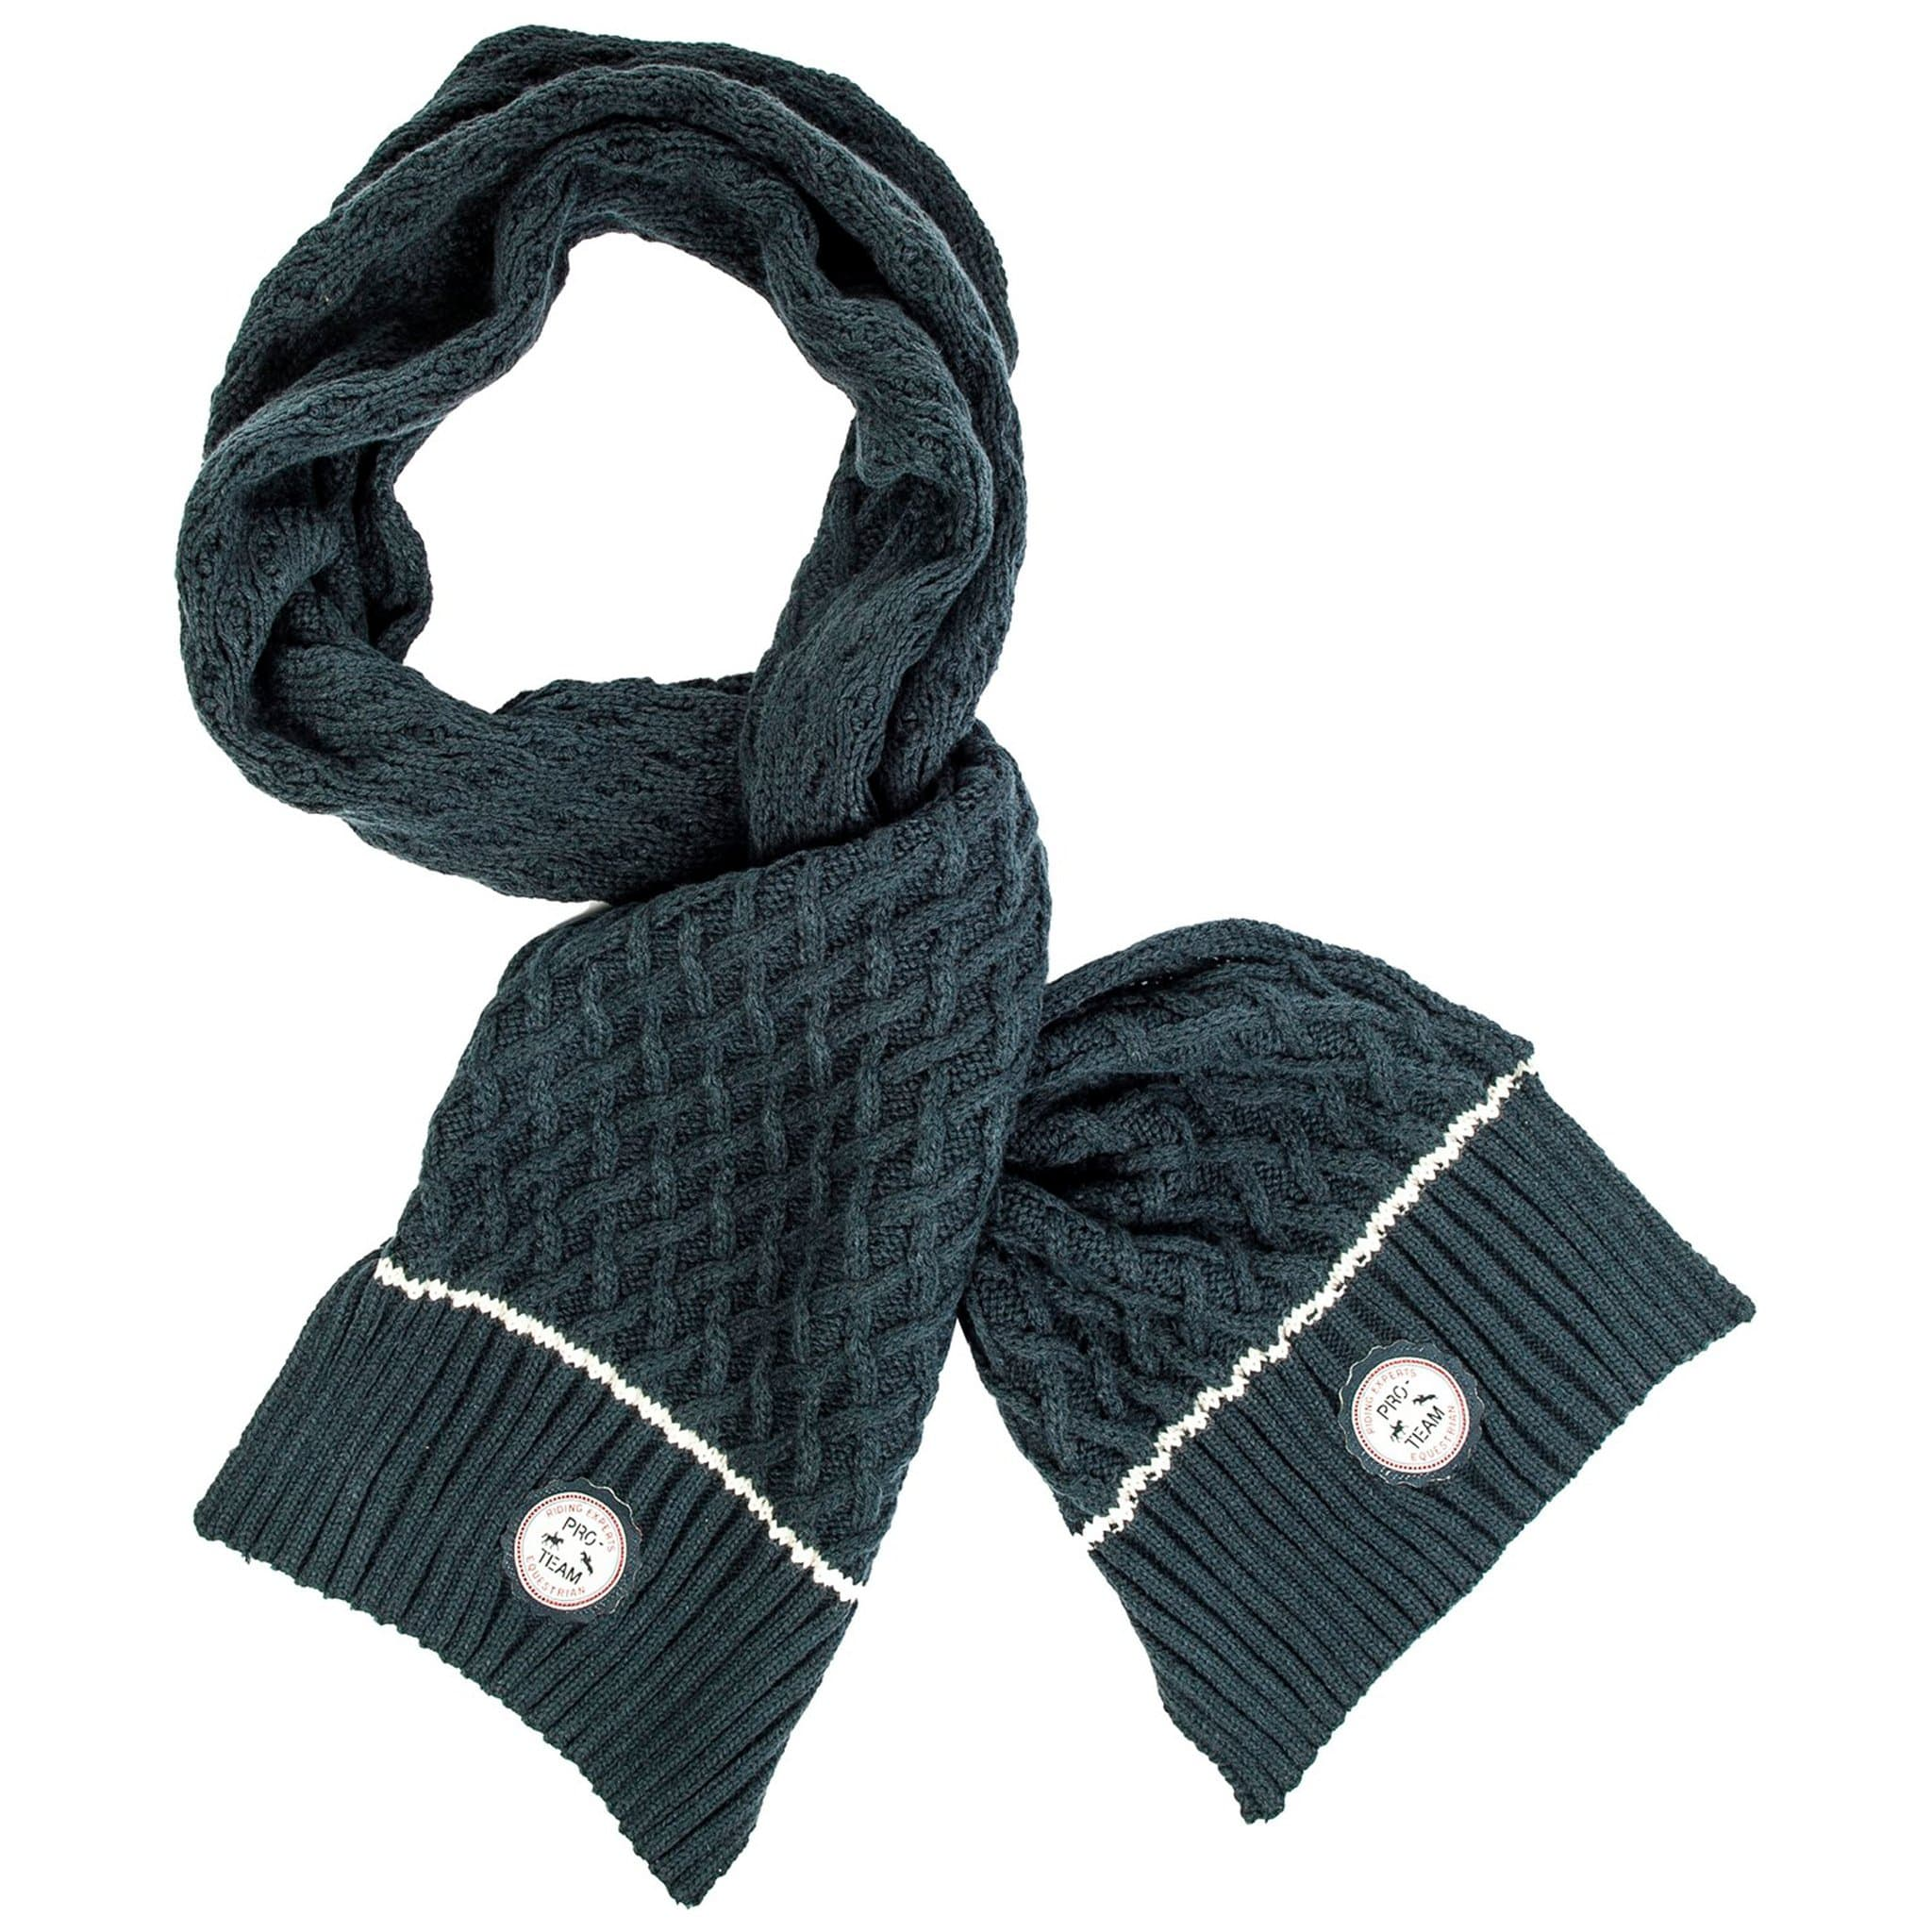 HKM Pro Team Dynamic Knitted Scarf 6869